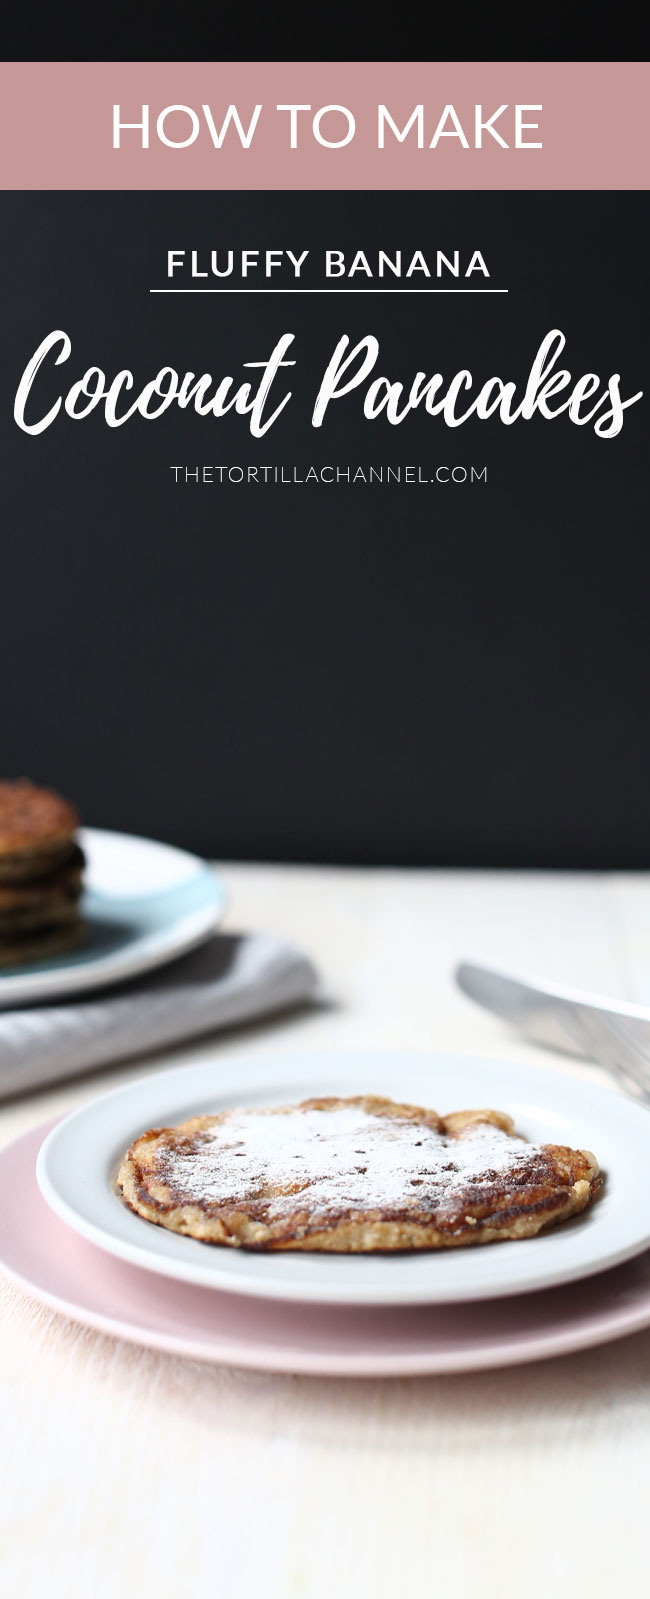 Fluffy banana coconut pancakes with icing sugar on a plate